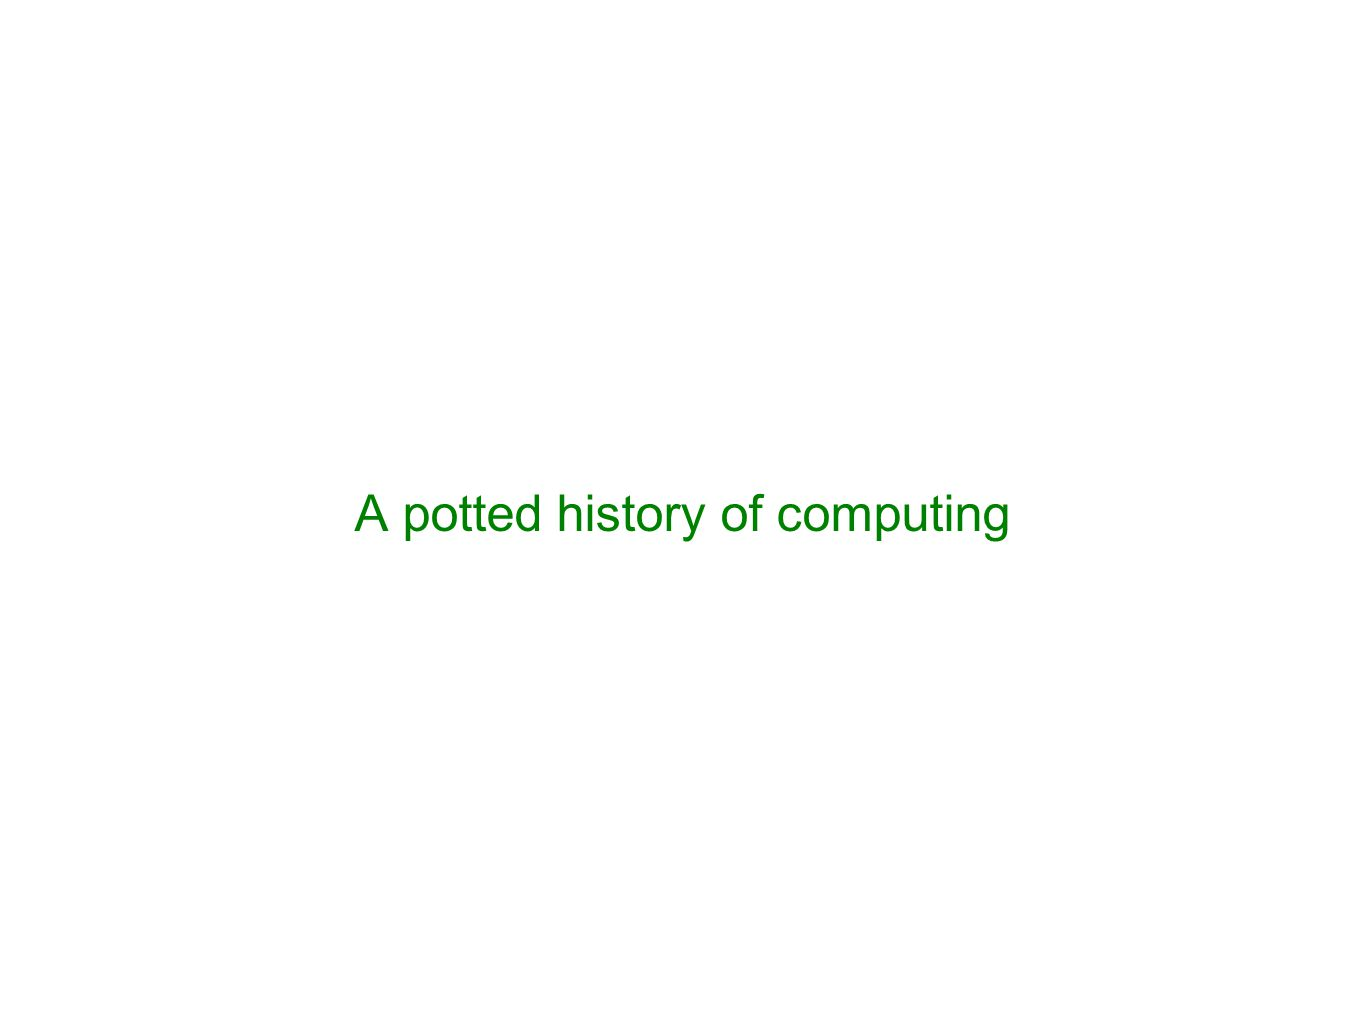 A potted history of computing